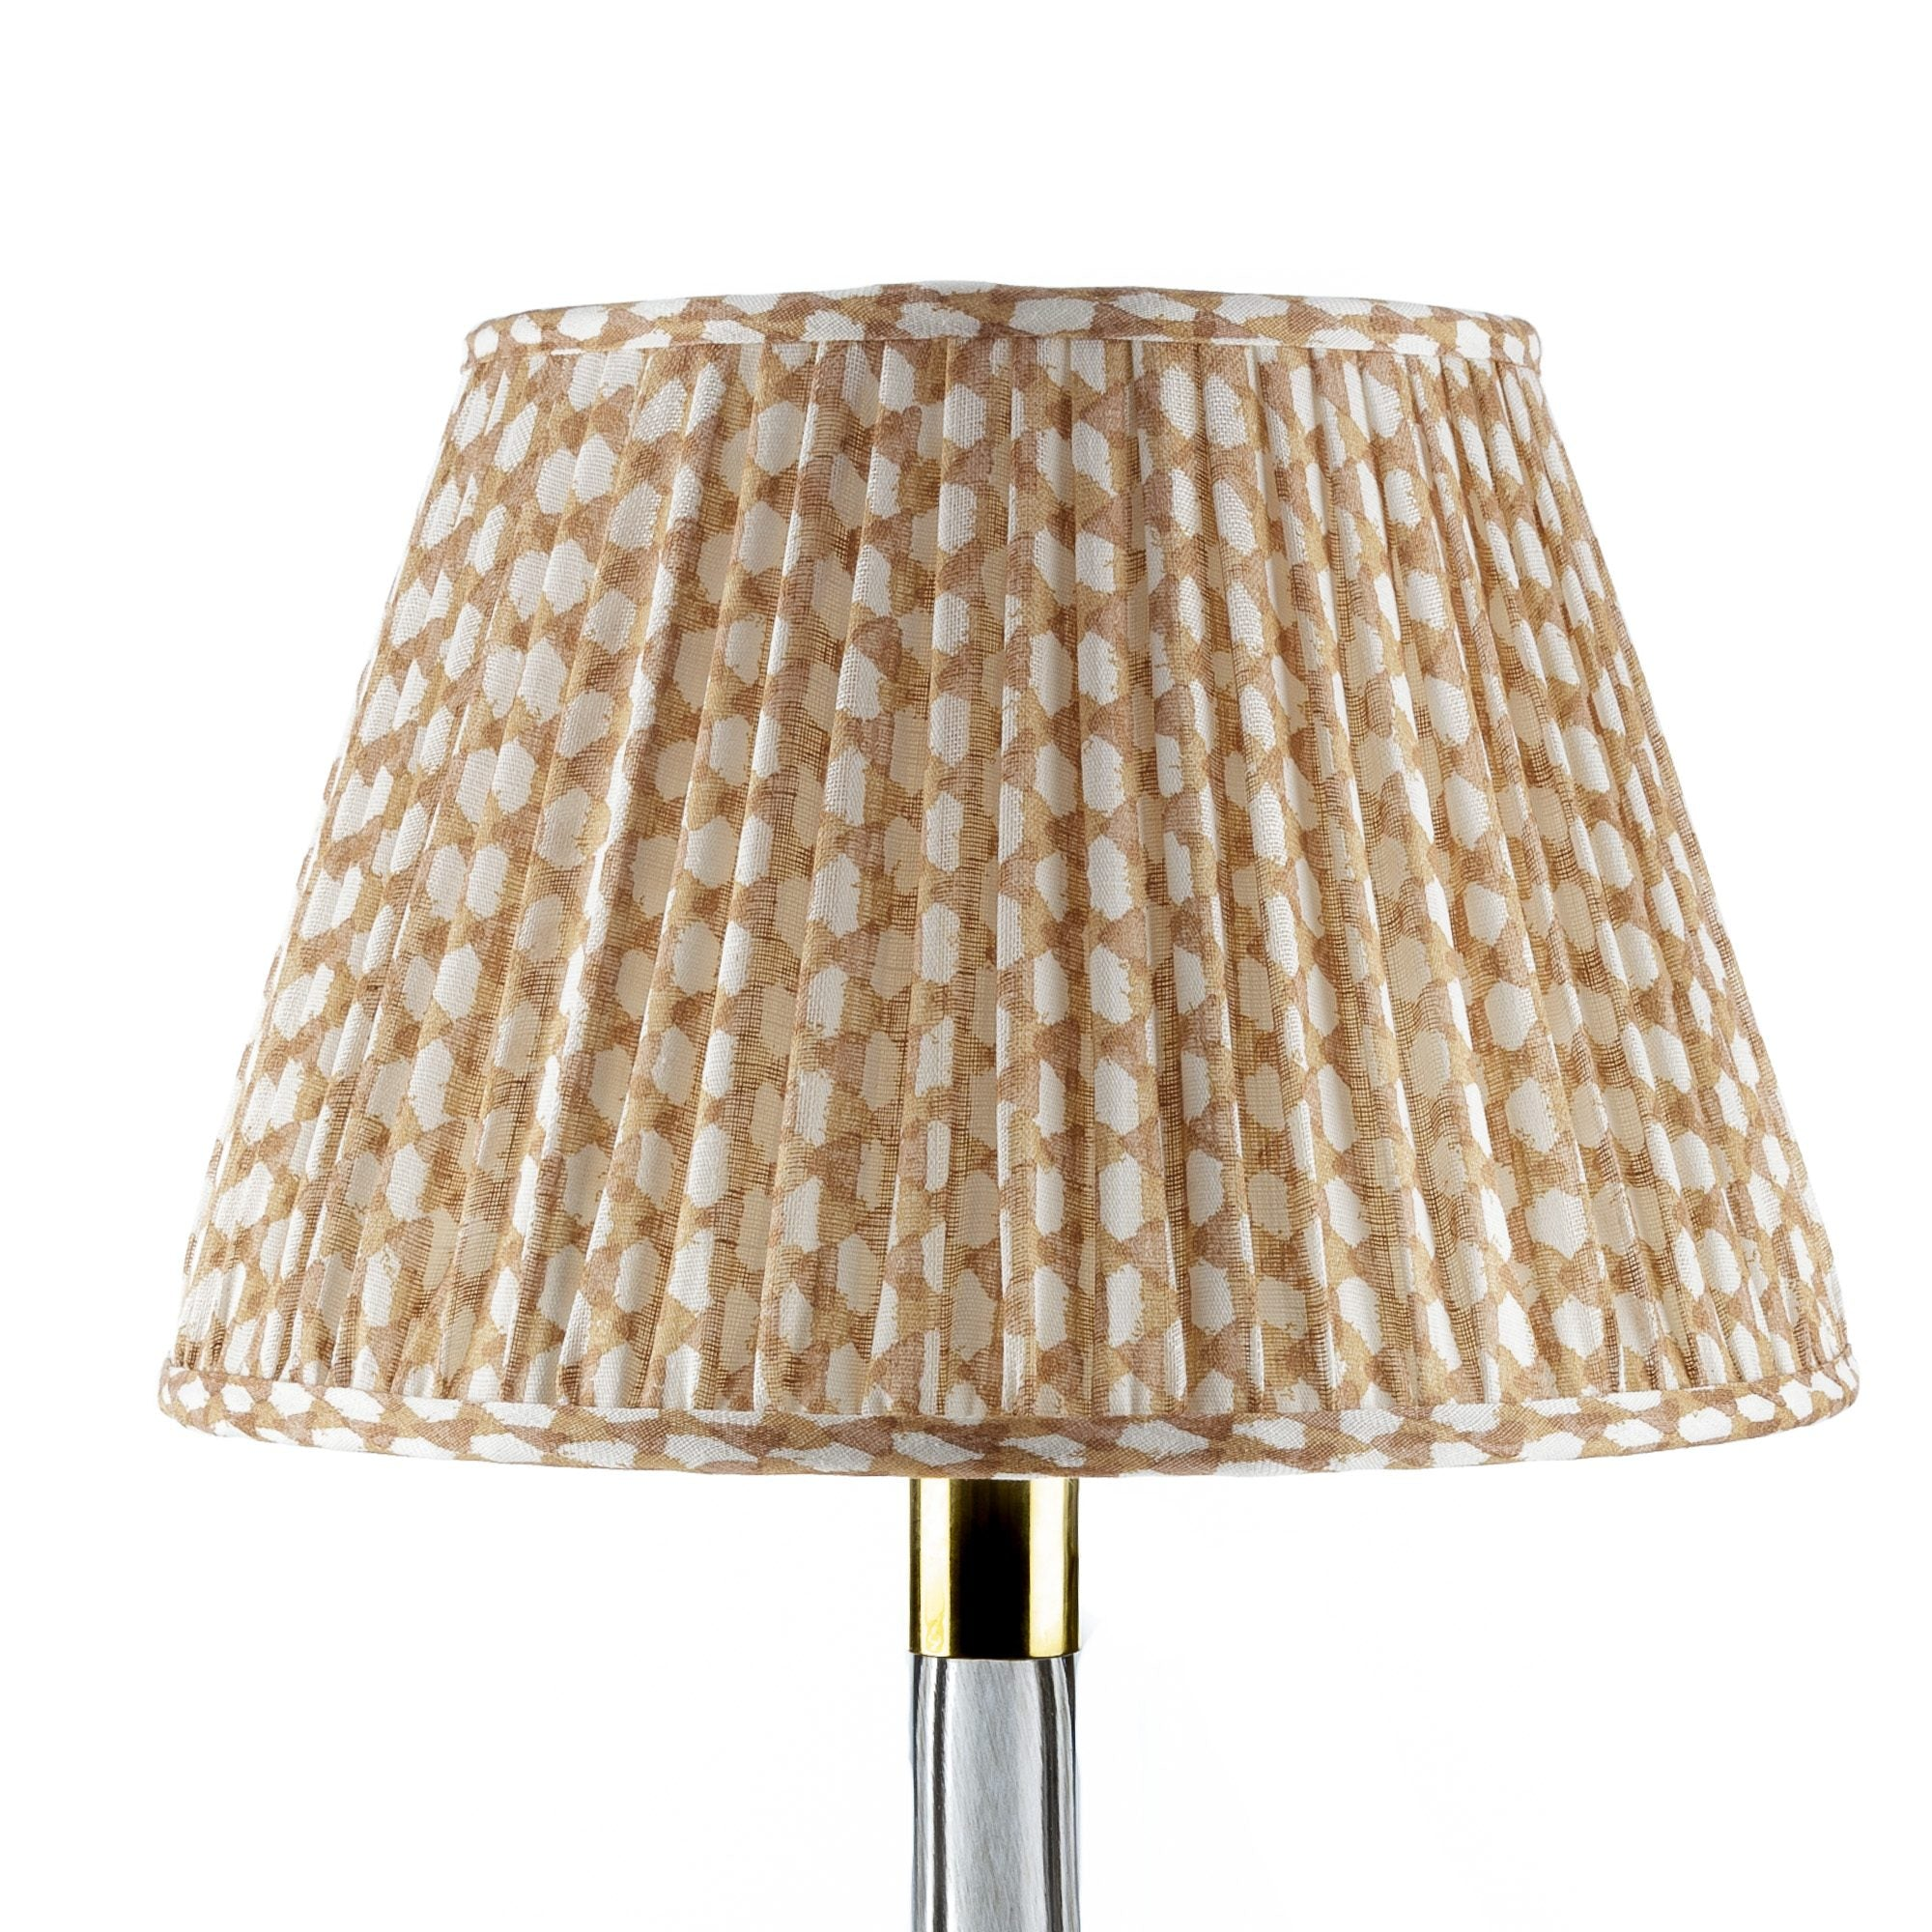 Fermoie Lampshade in Nut Brown Wicker